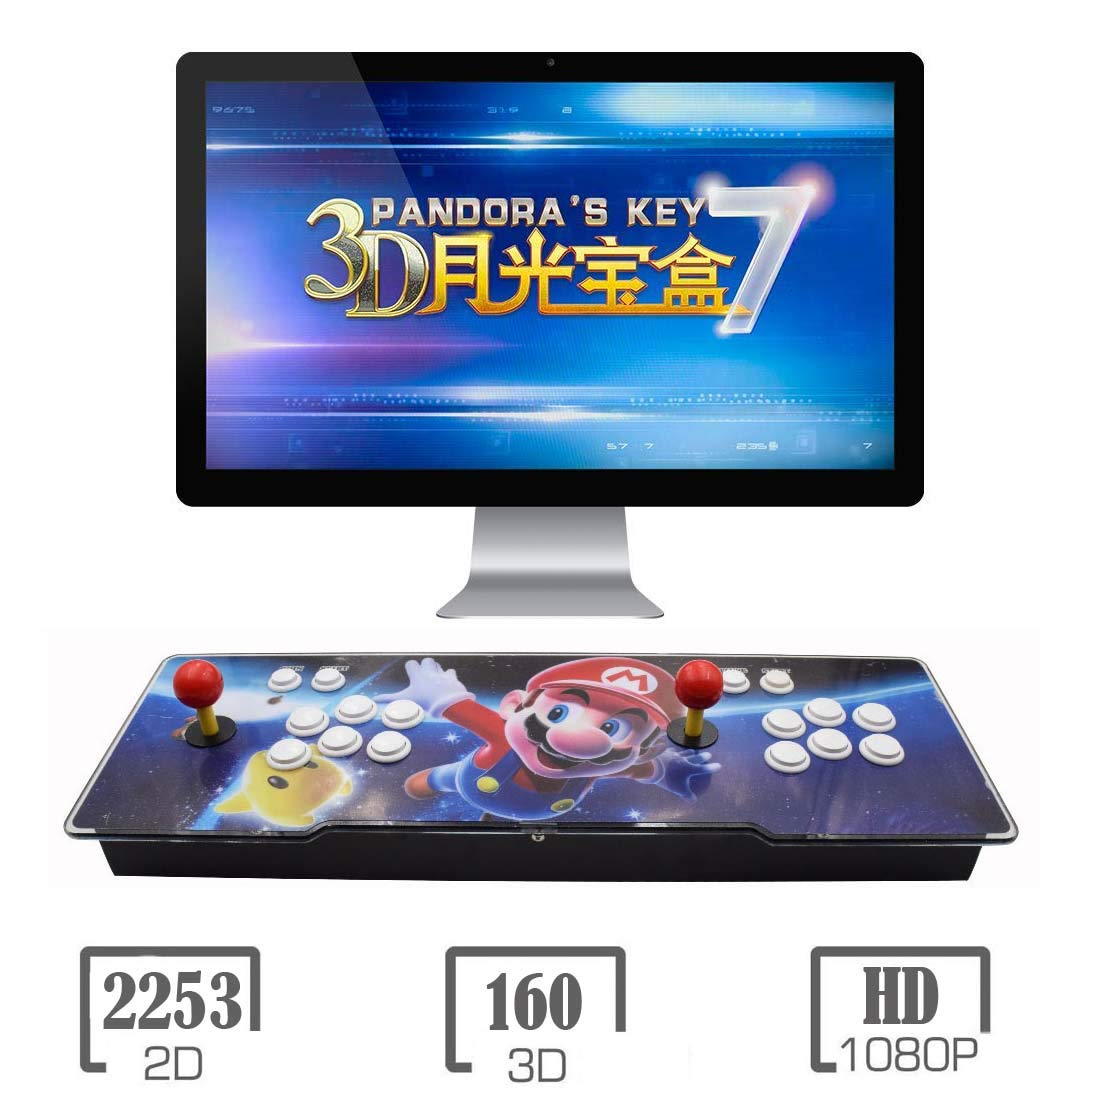 3D Pandora Key 7 Arcade Game Console | 2413 Retro HD Games | Support 3D Games | Add More Games | Support 4 Players | Full HD (1920x1080) Video | 2 Player Game Controls | HDMI/VGA/USB/AUX Audio Output